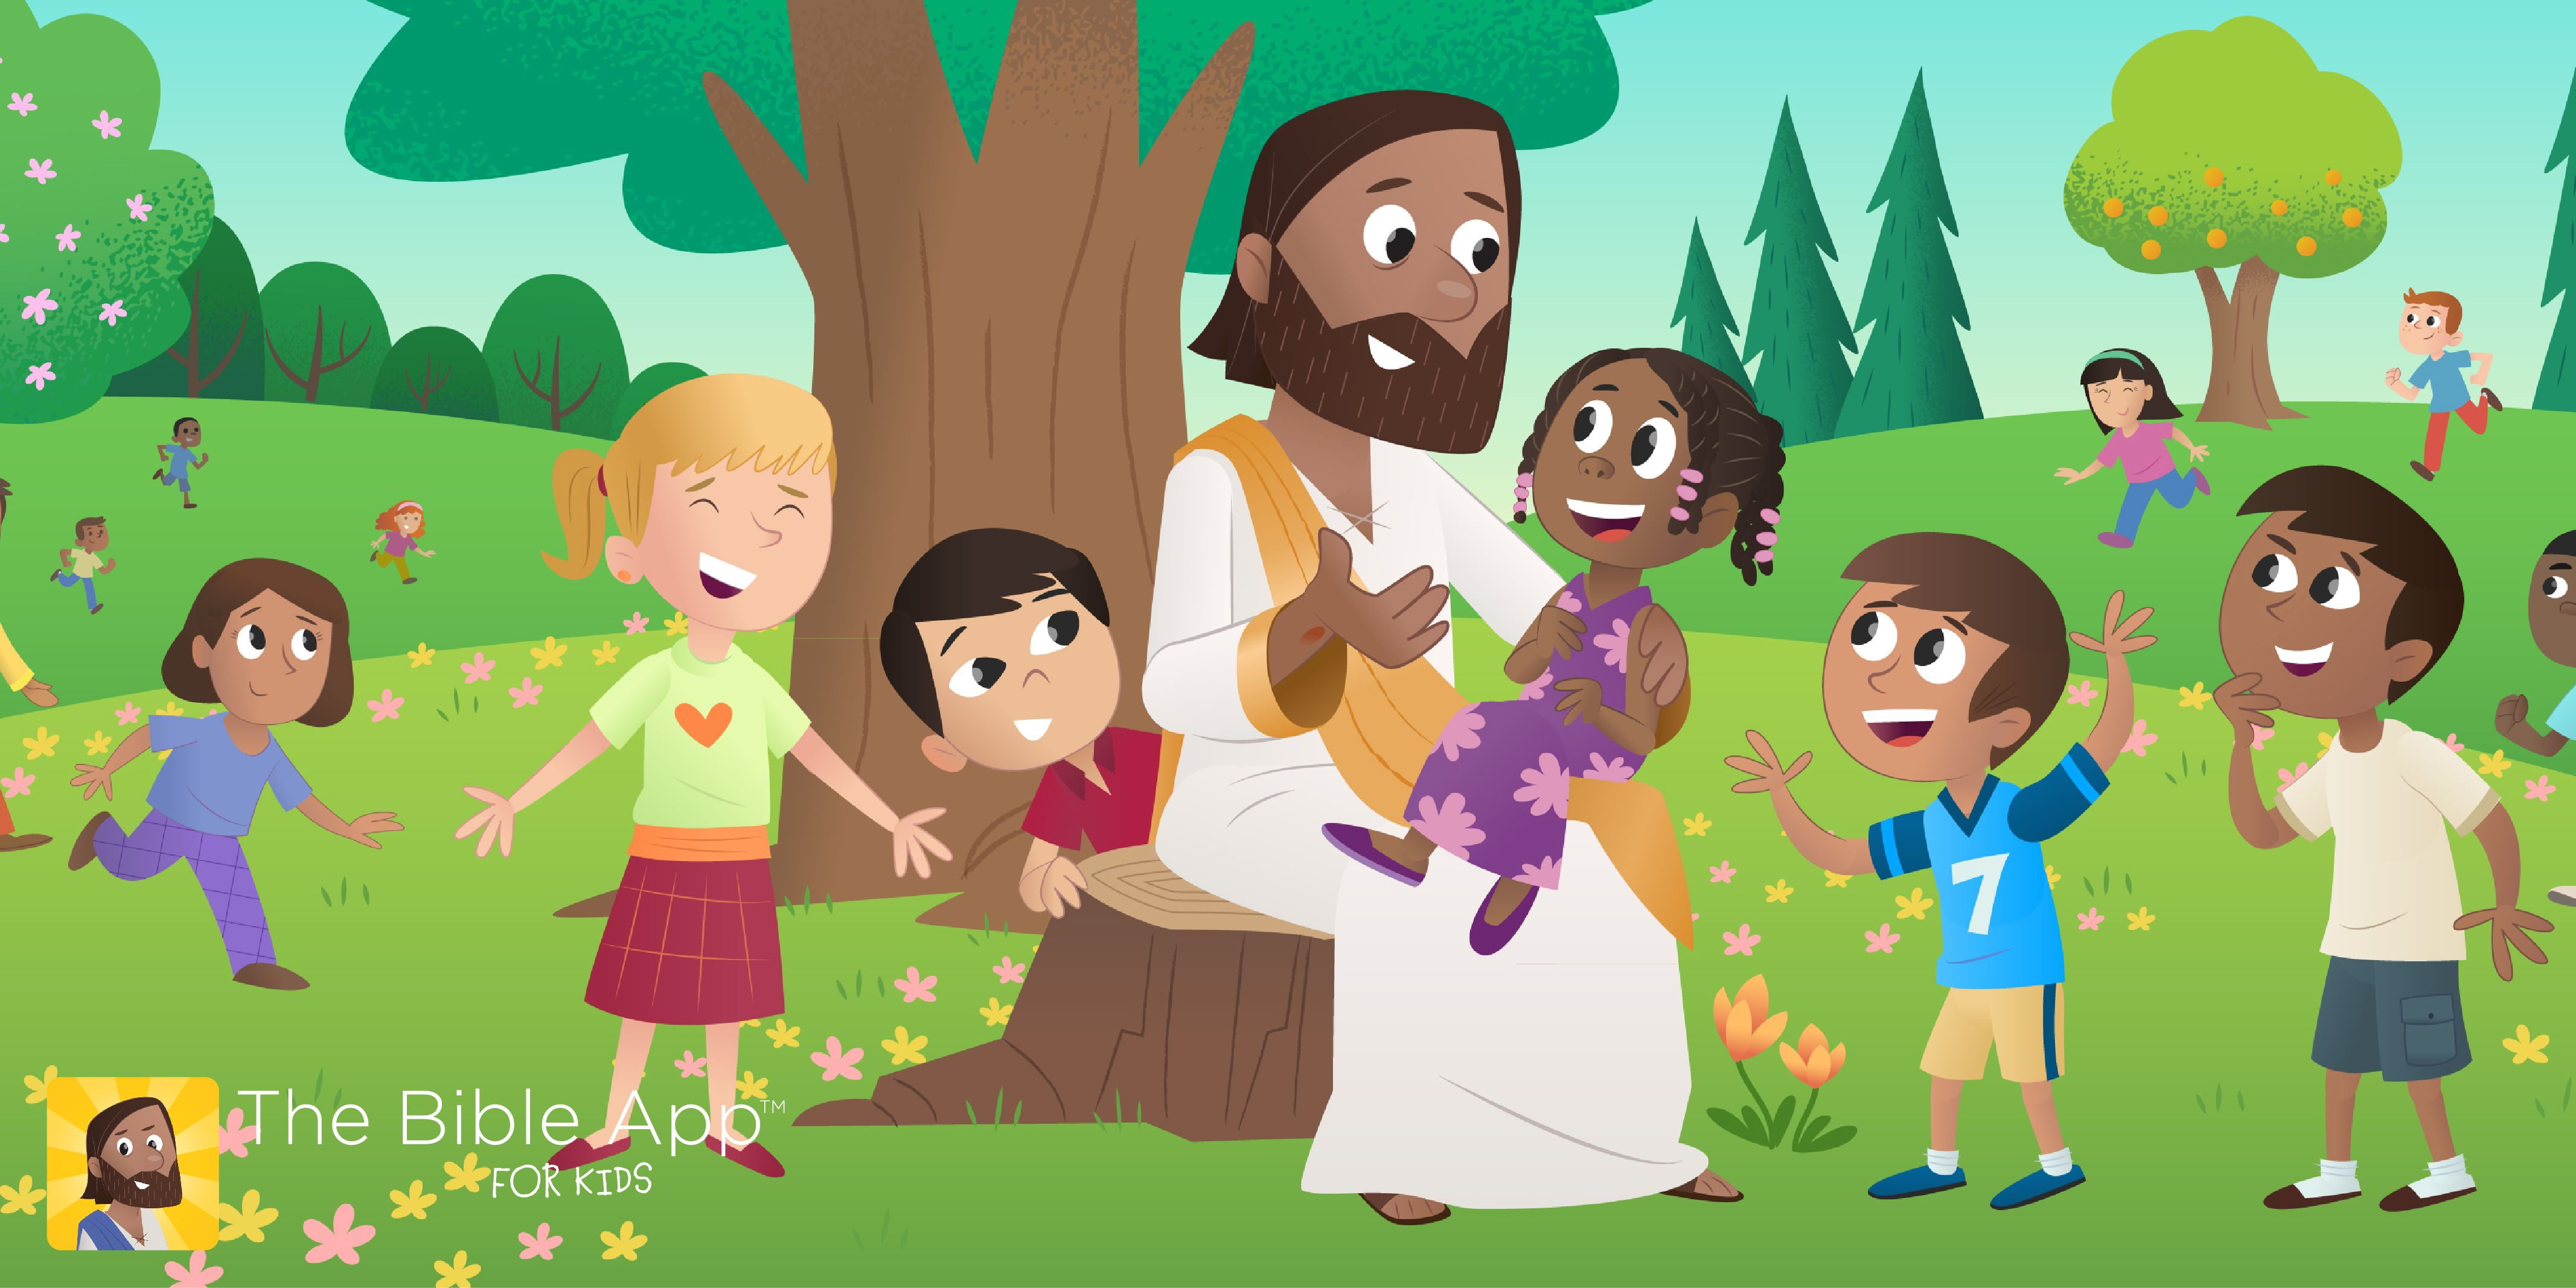 bible story images for kids google search jesus cura cria ao do mundo bible [ 4267 x 2133 Pixel ]